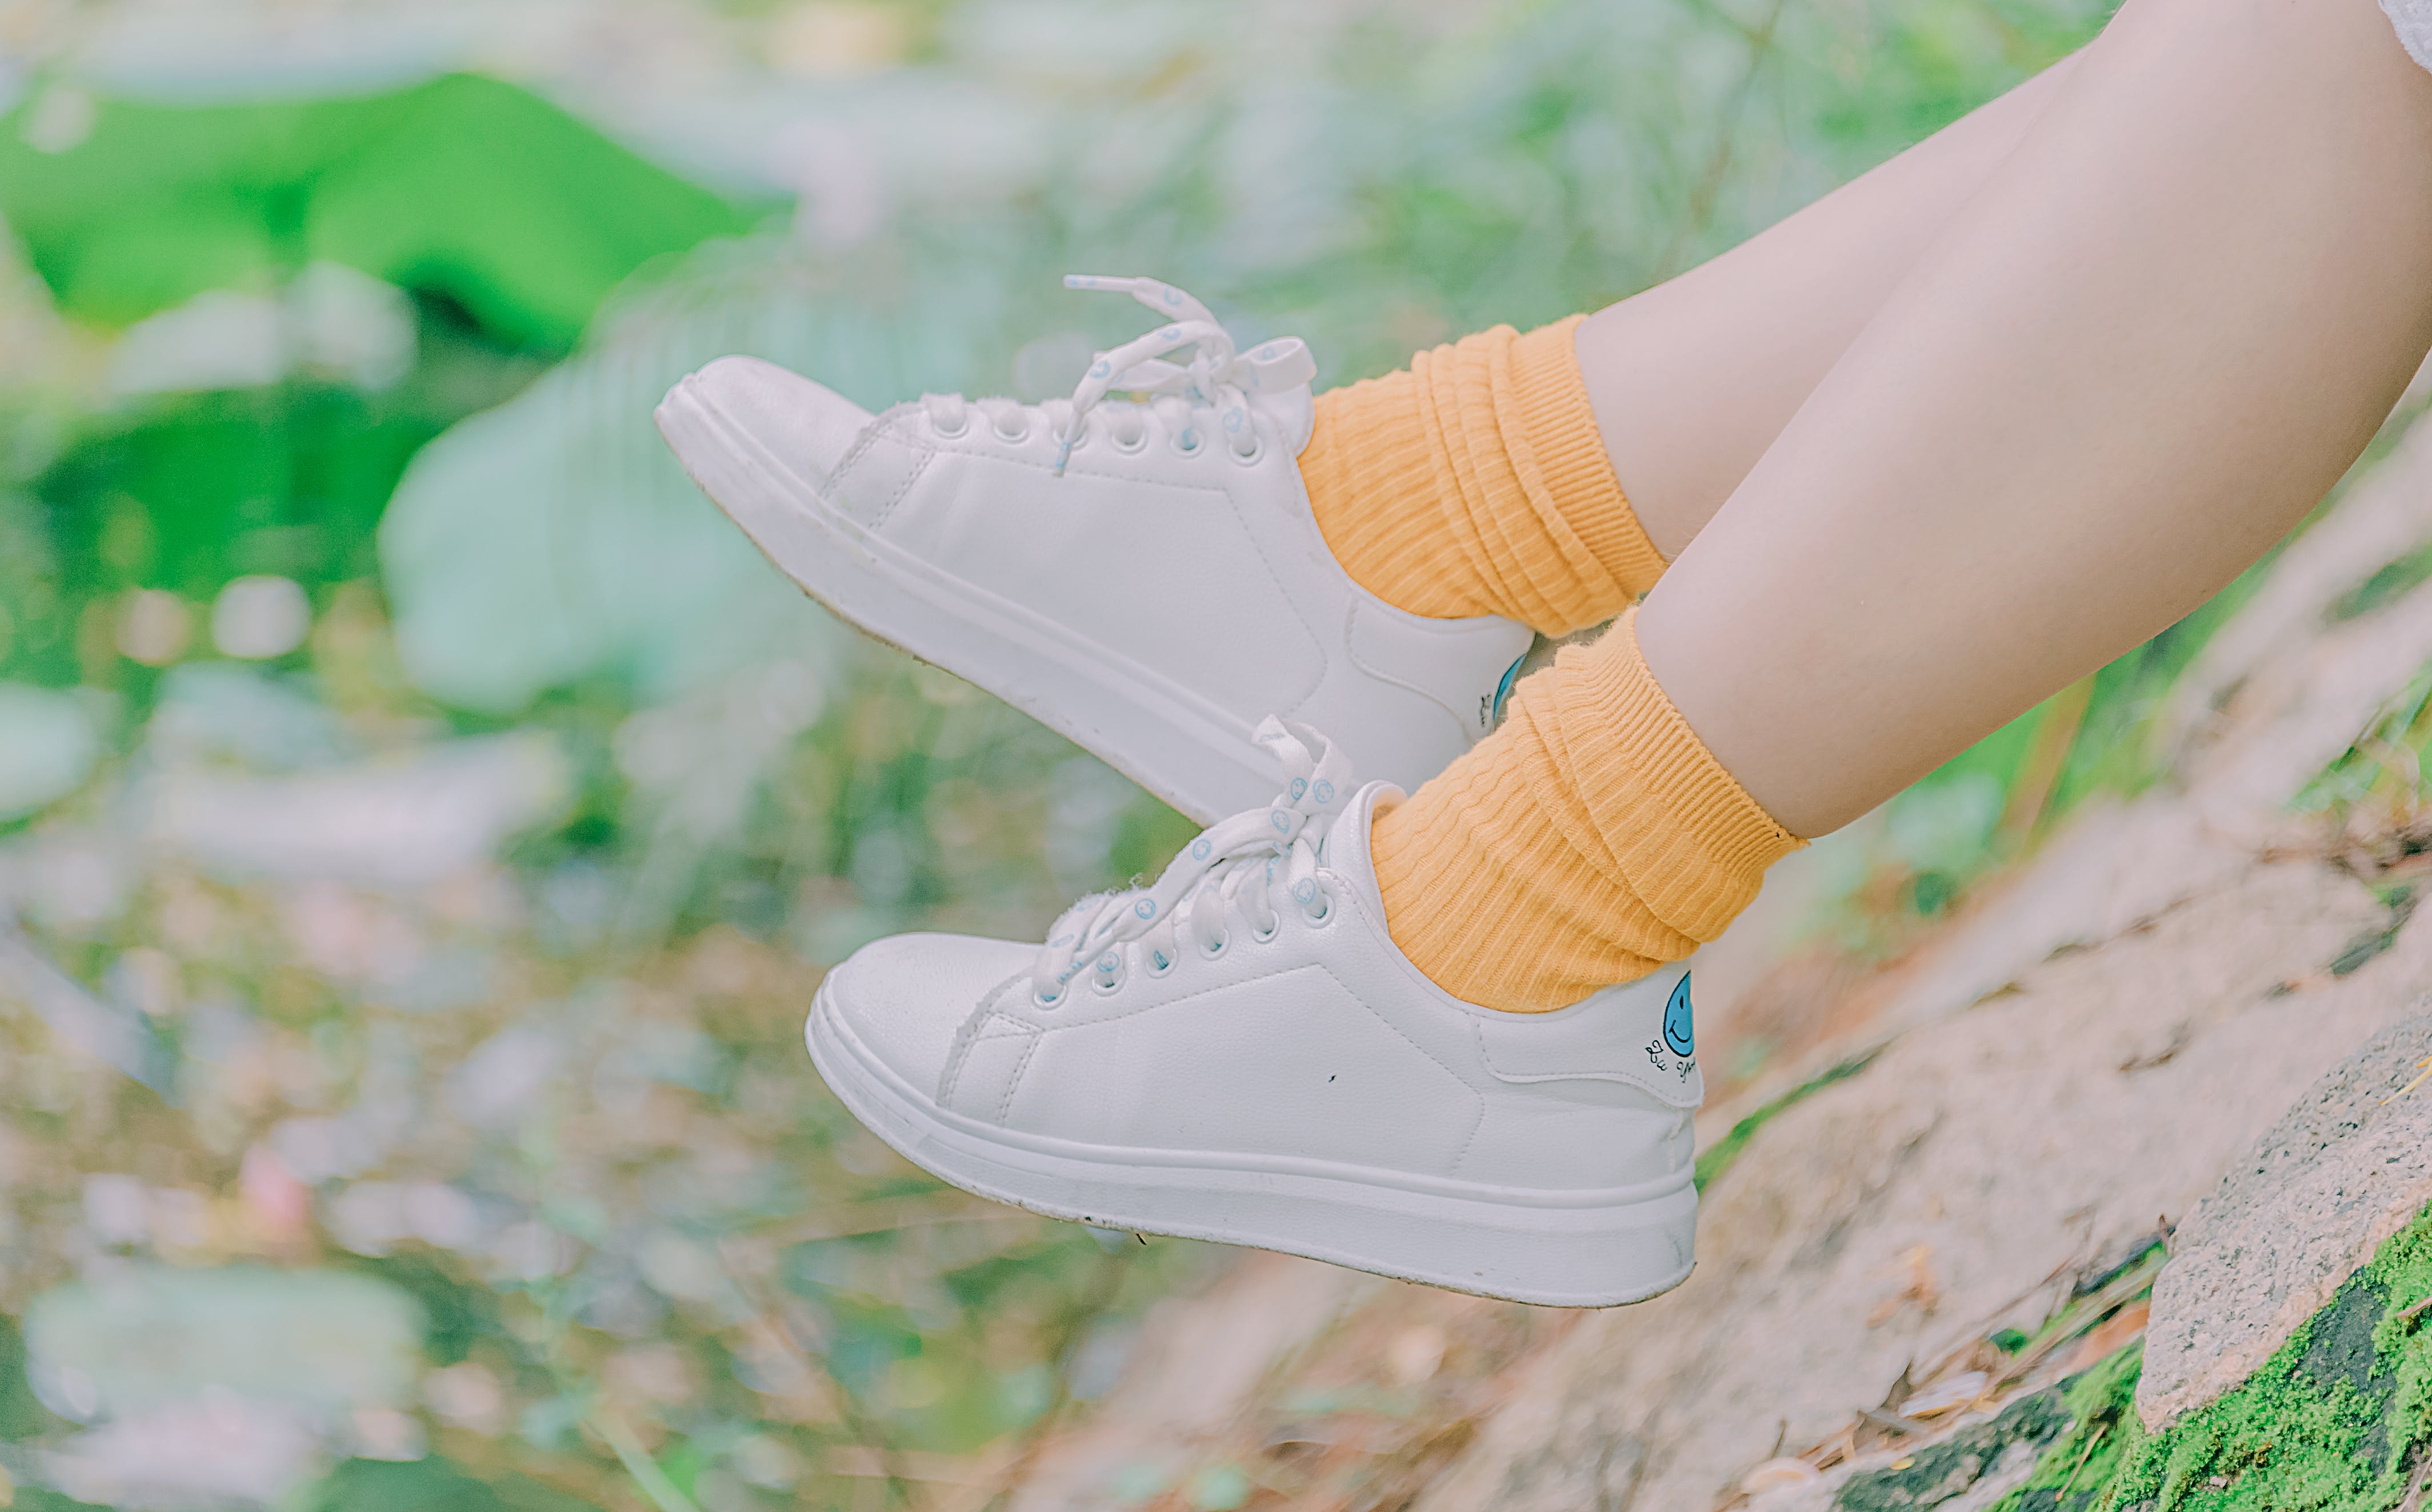 Person Wearing Pair of White Low-top Sneakers and Orange Crew Socks